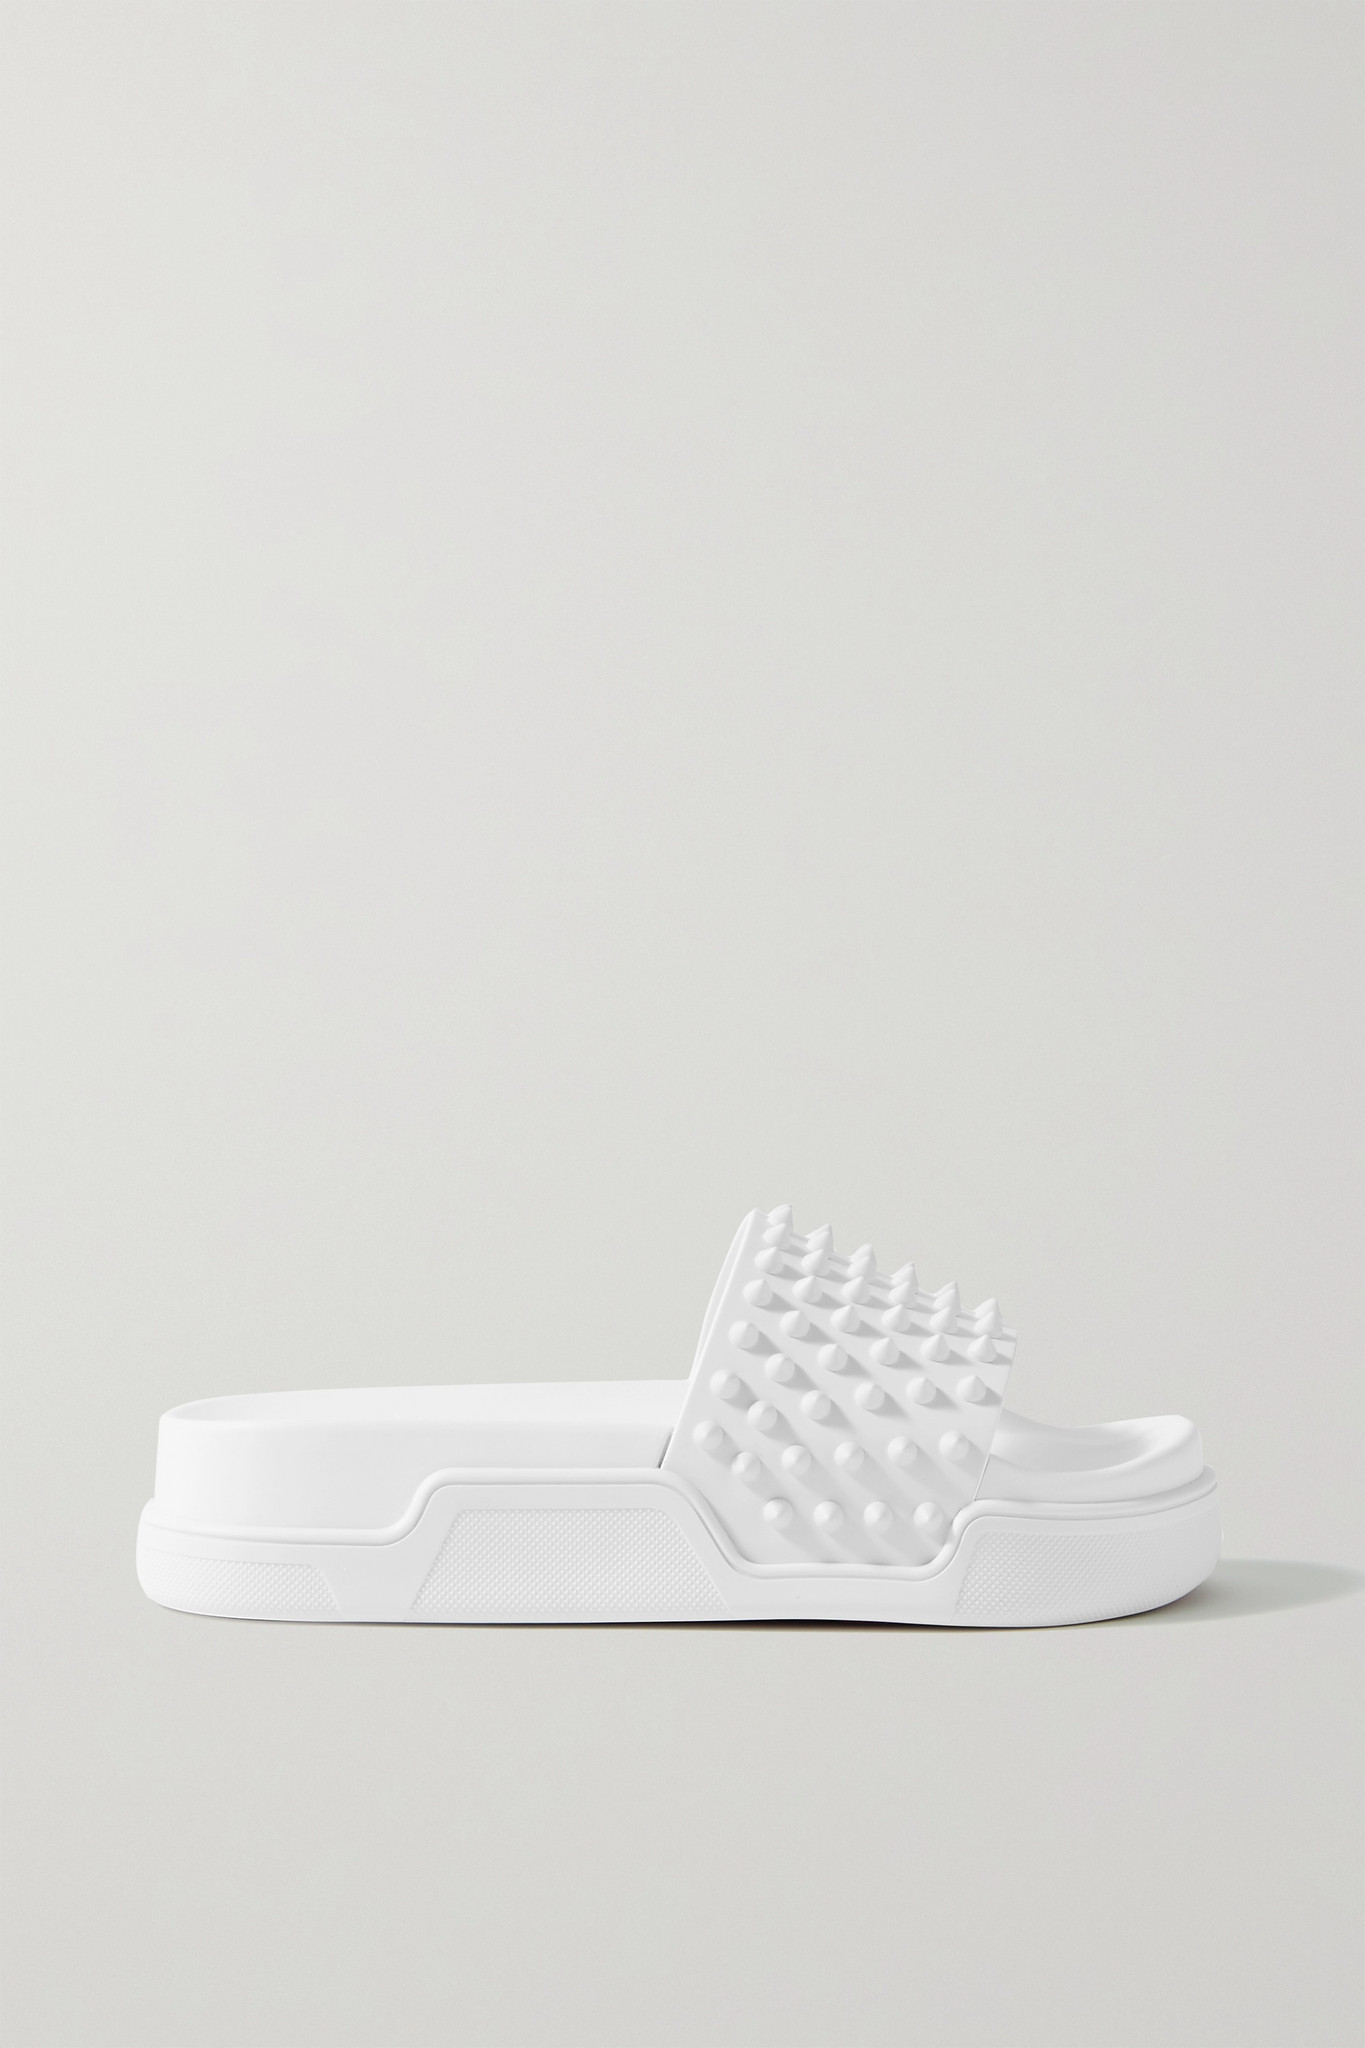 CHRISTIAN LOUBOUTIN - Pool Fun Donna 35 Spiked Leather Slides - White - IT36